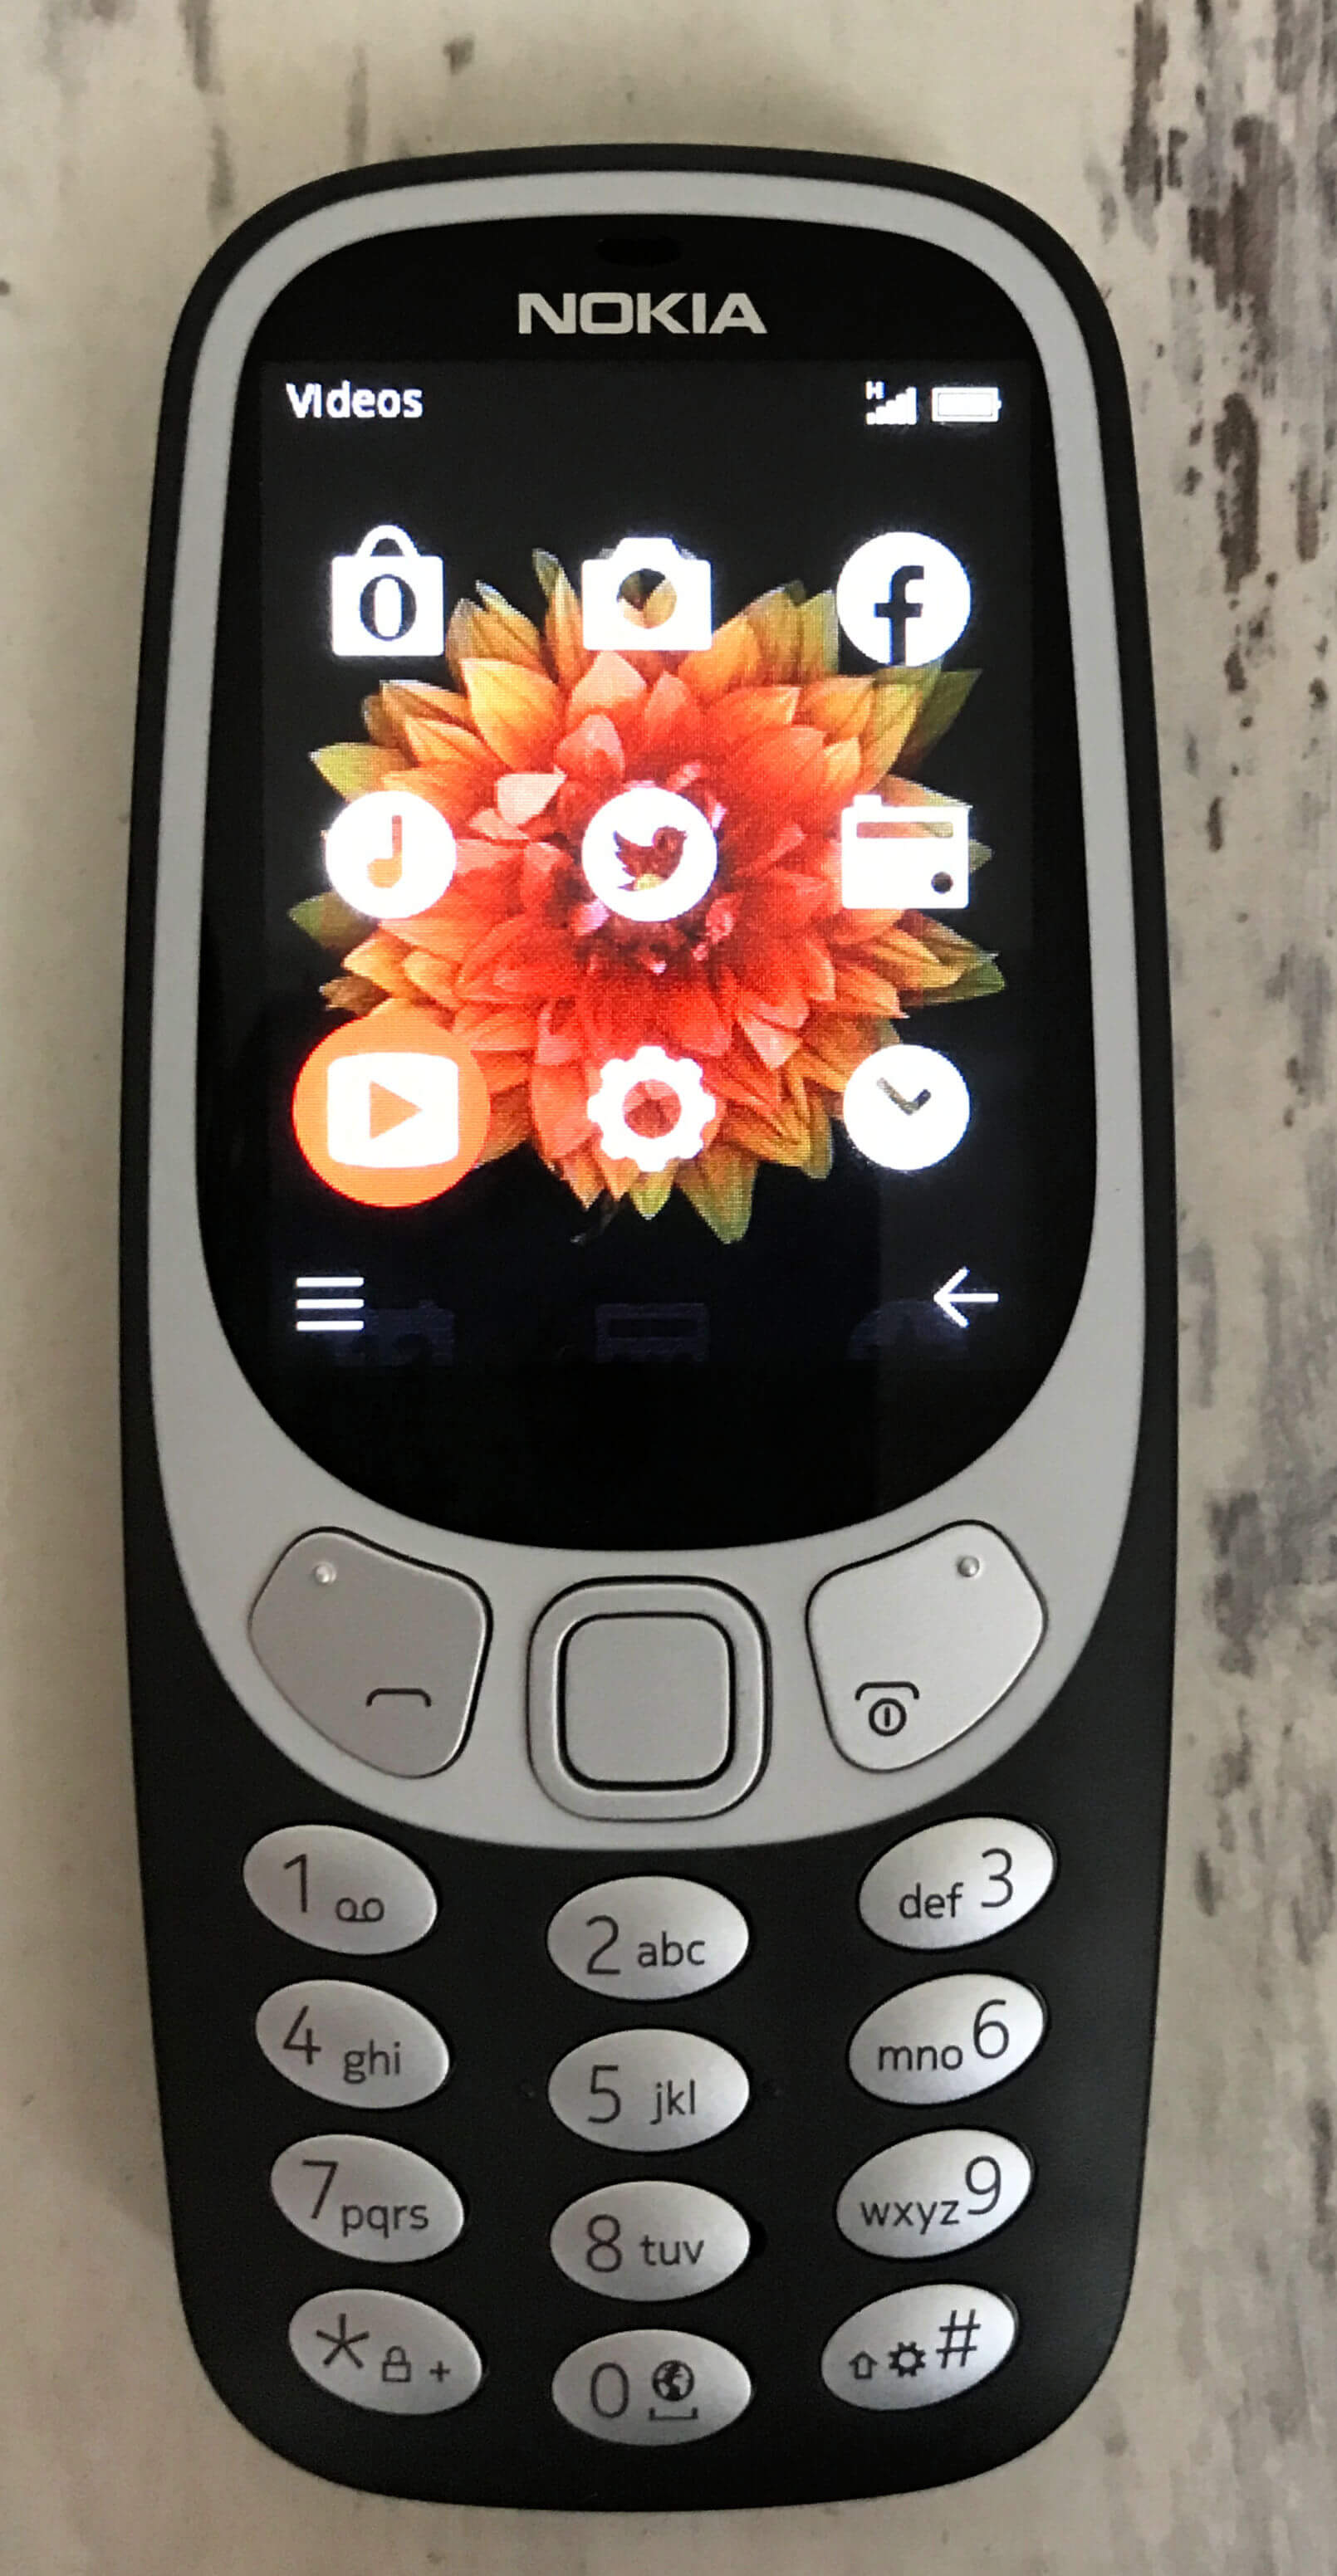 family mobile - Nokia 3310 3G screen showing icons